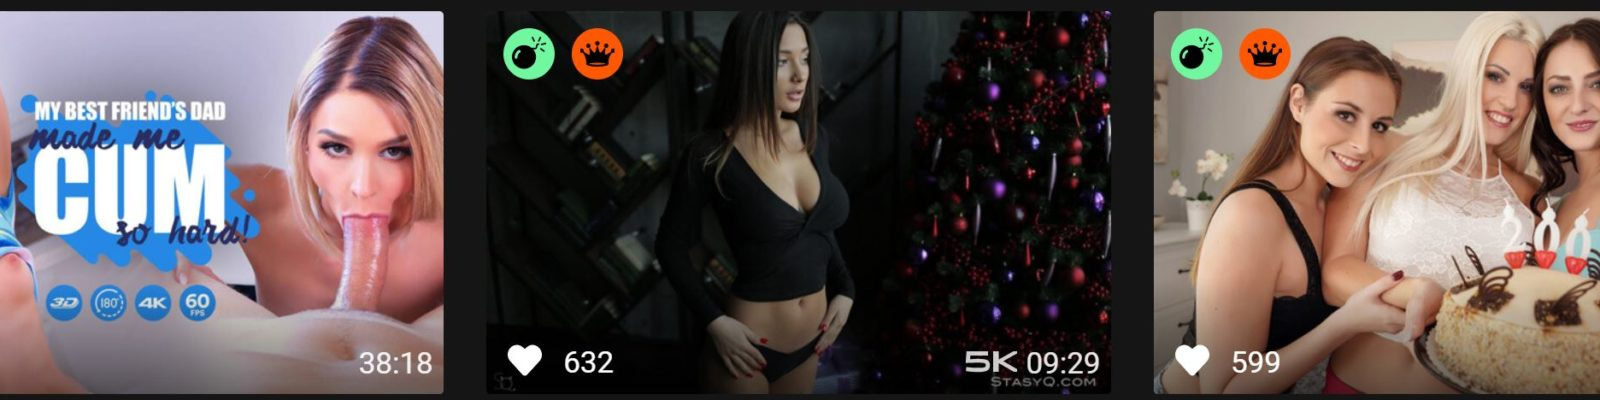 sex like real vr porn video banner